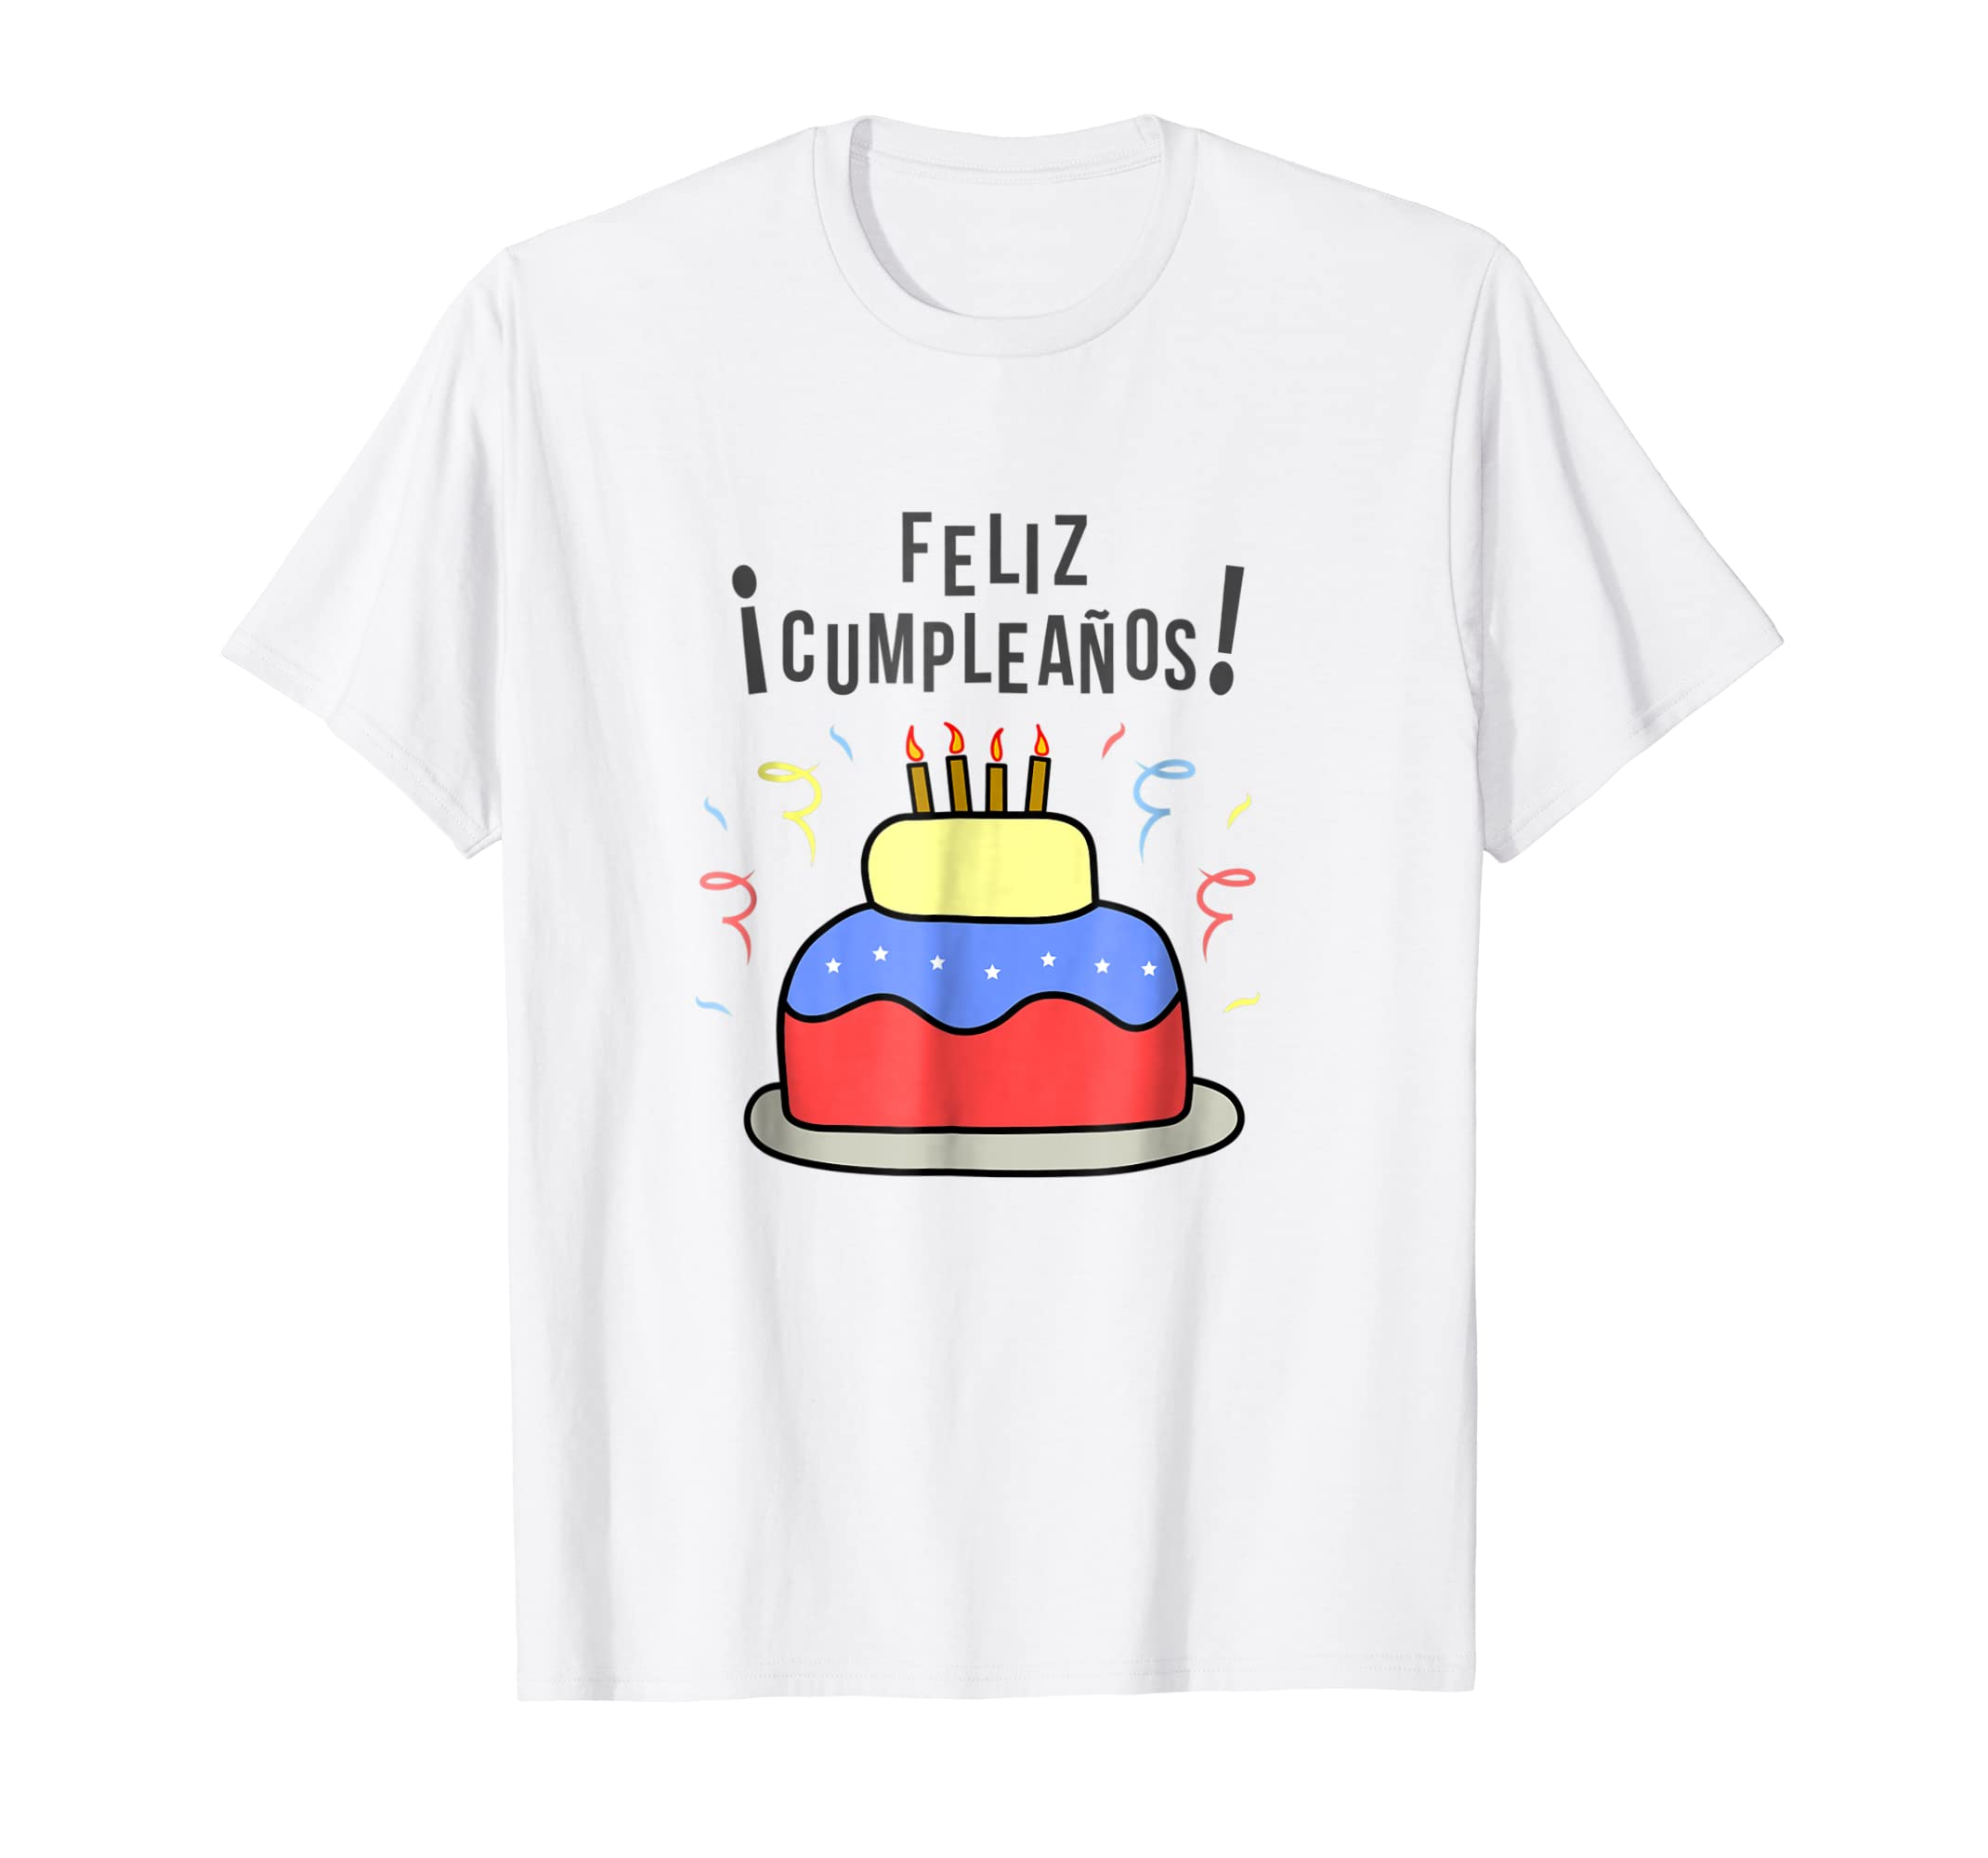 Amazon.com: Venezuela Happy Birthday Cake Cumpleanos Feliz ...